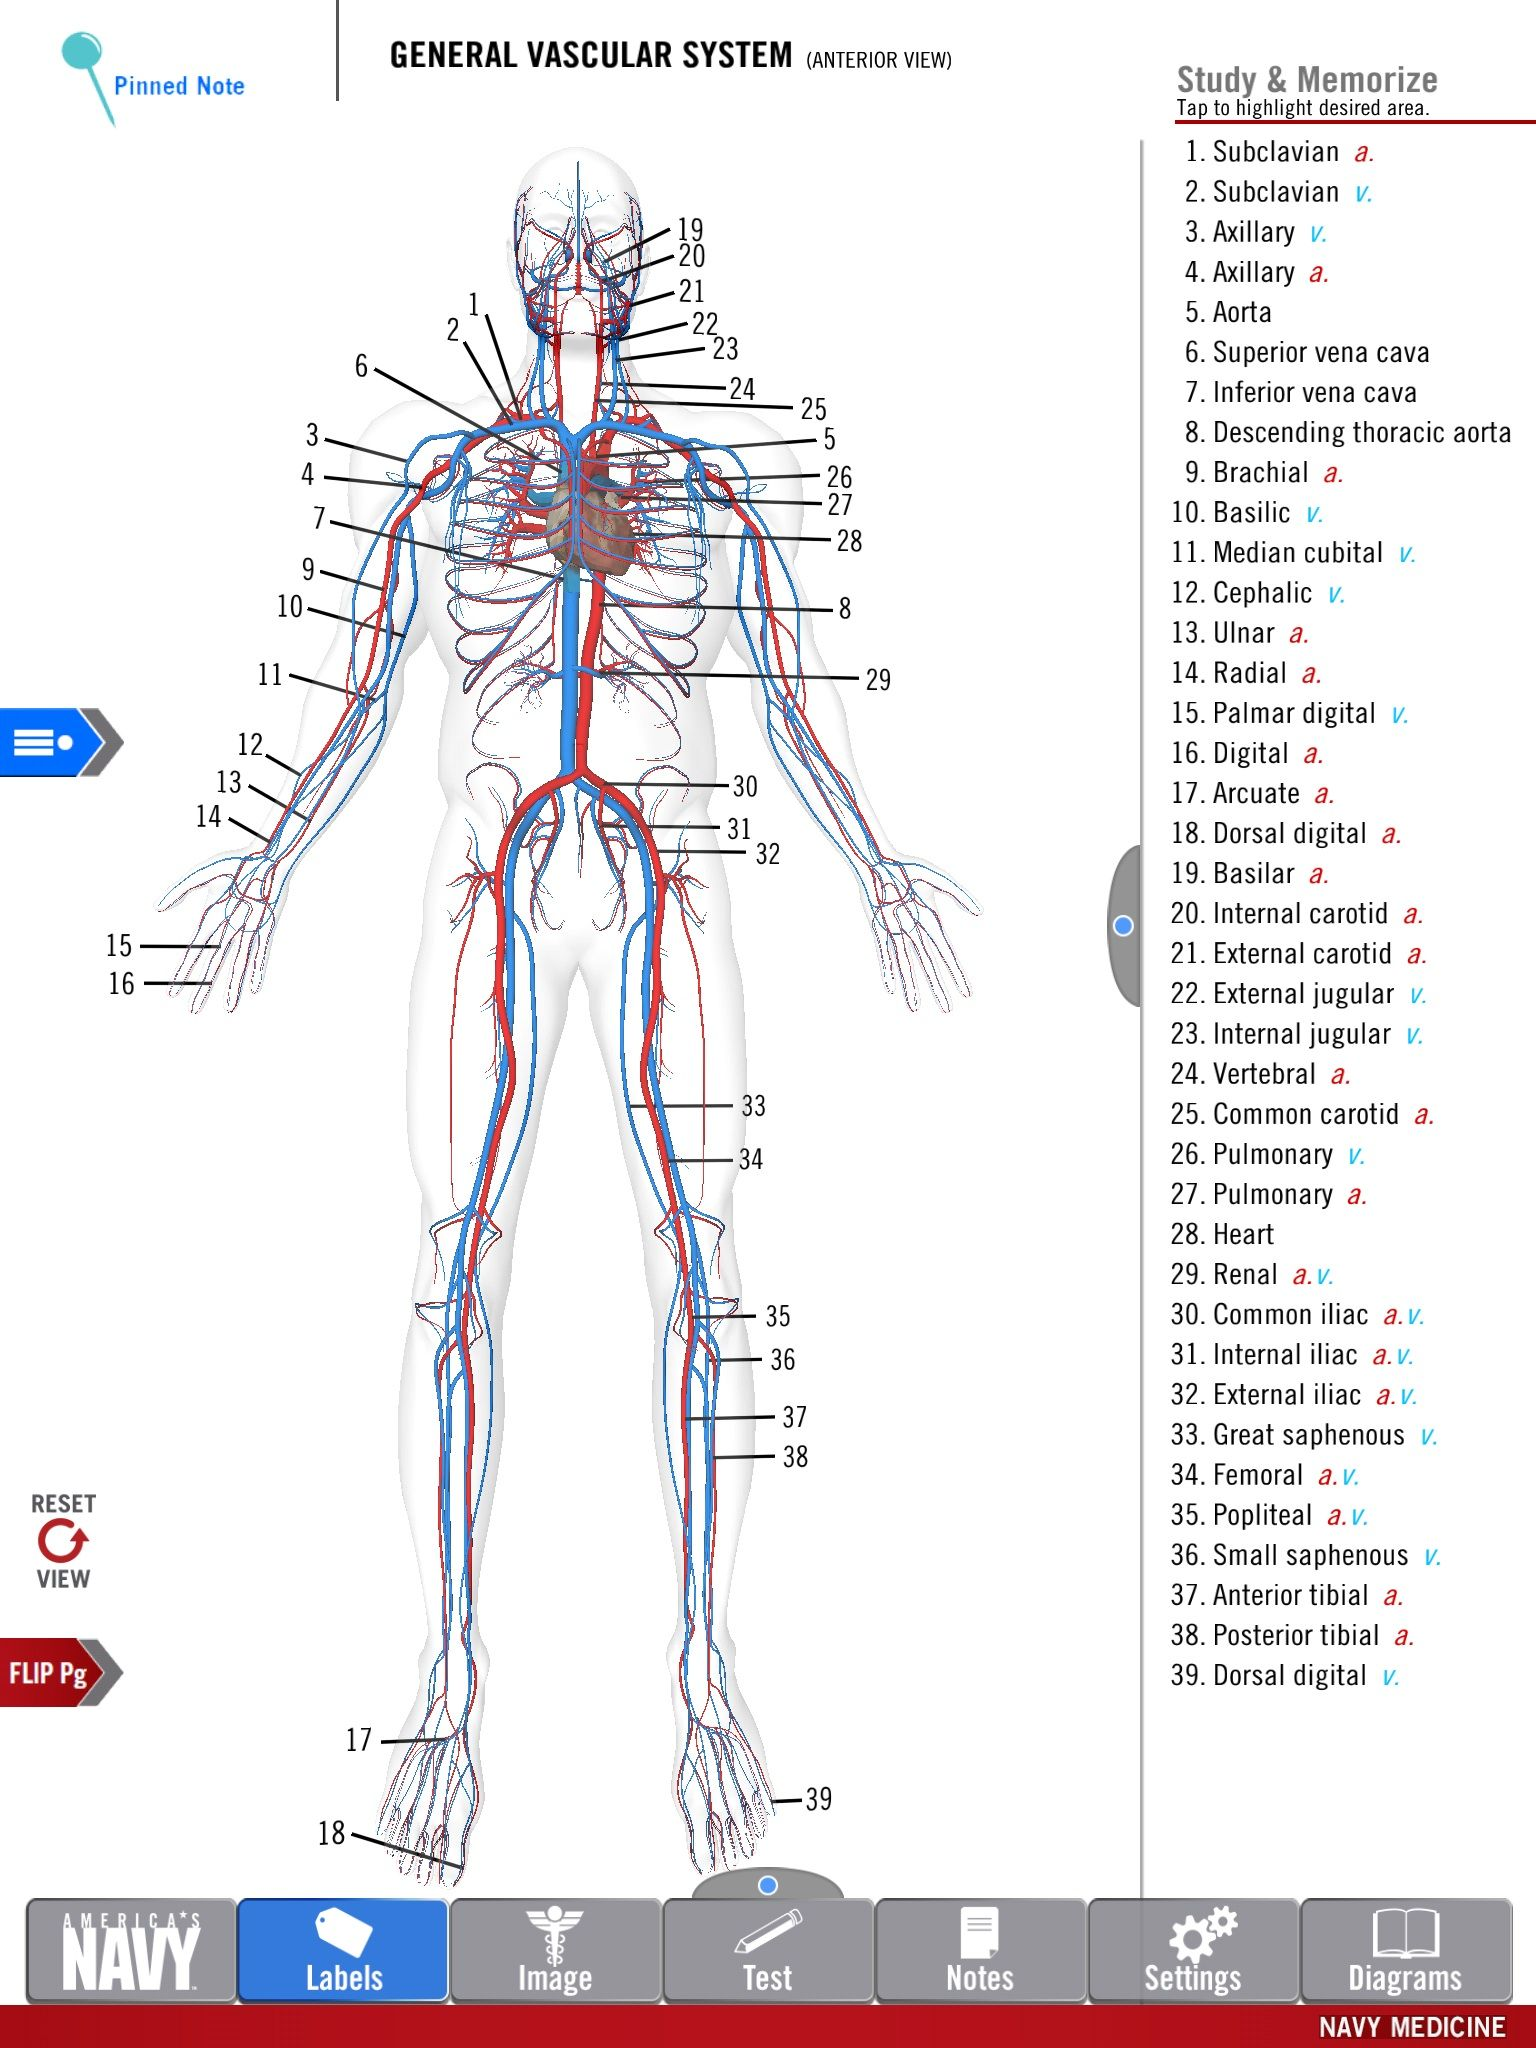 Diagram Of The General Vascular System From The Free Anatomy Study